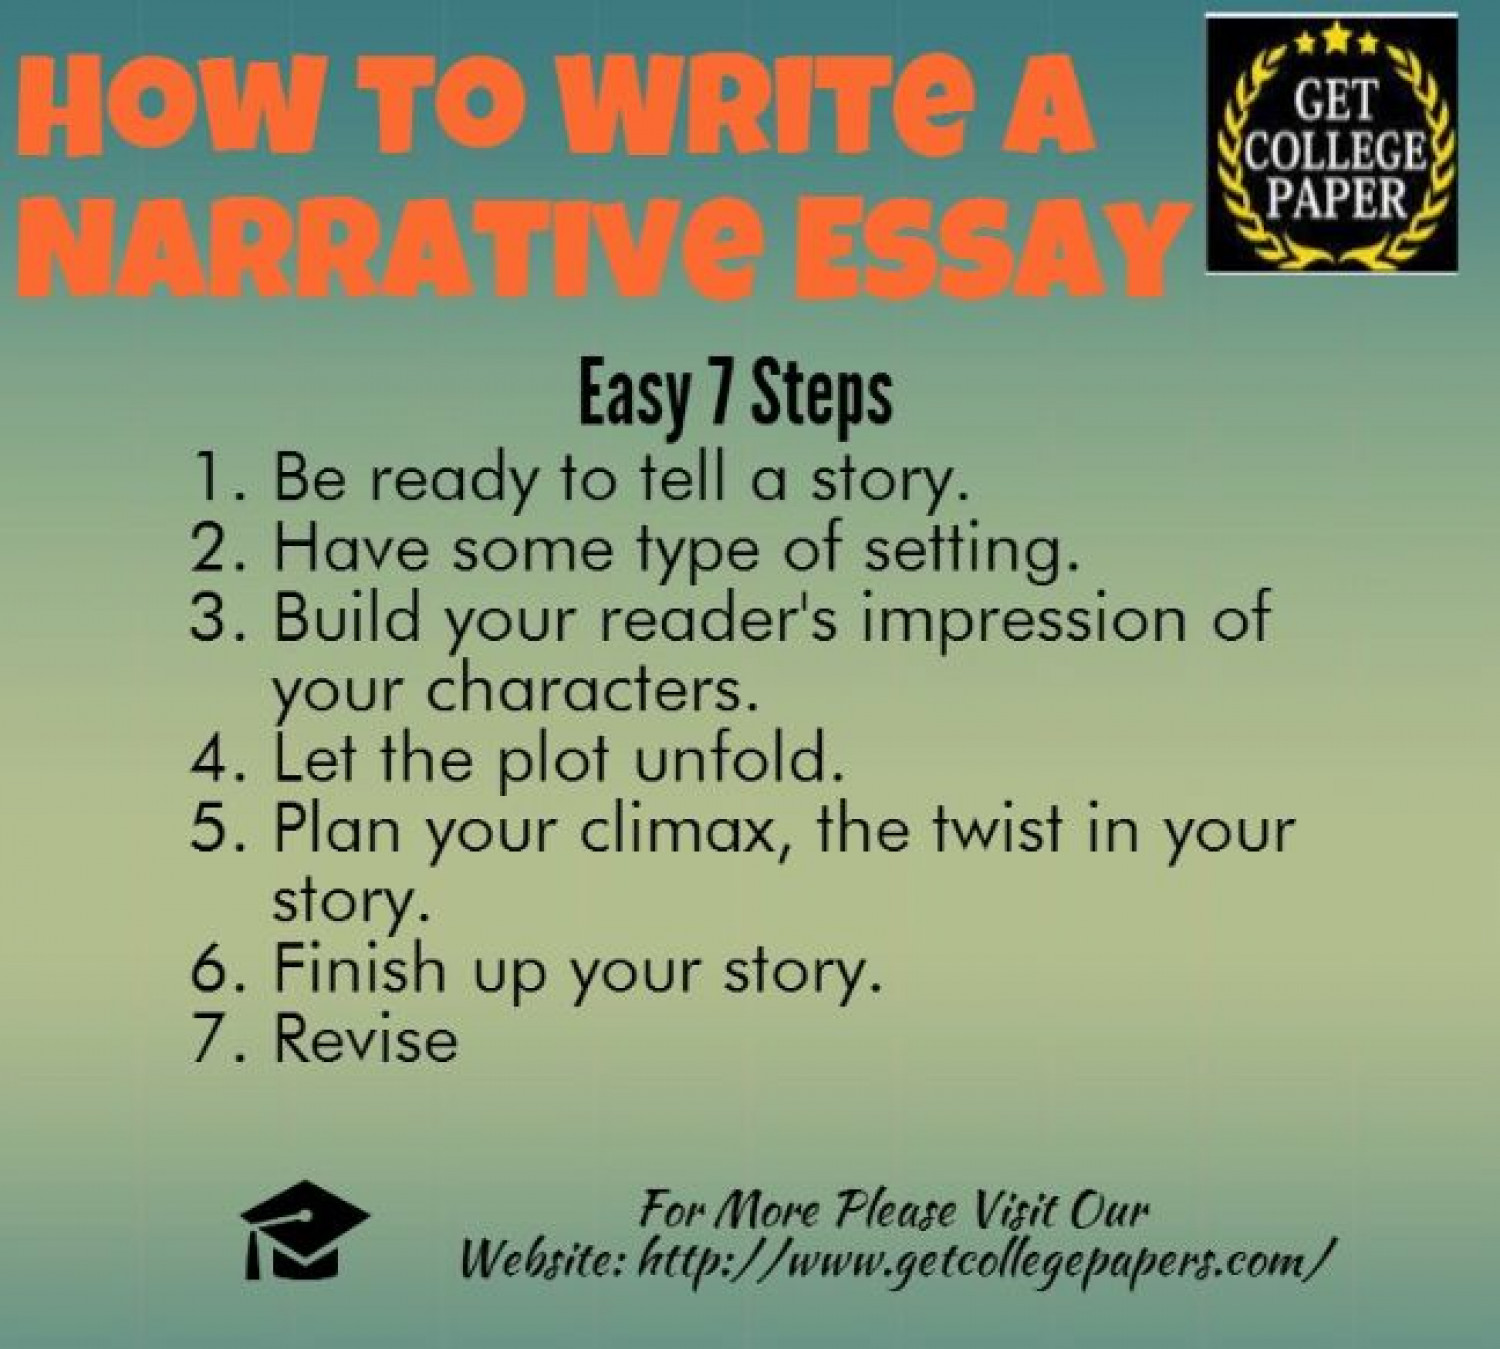 How to do a narrative essay